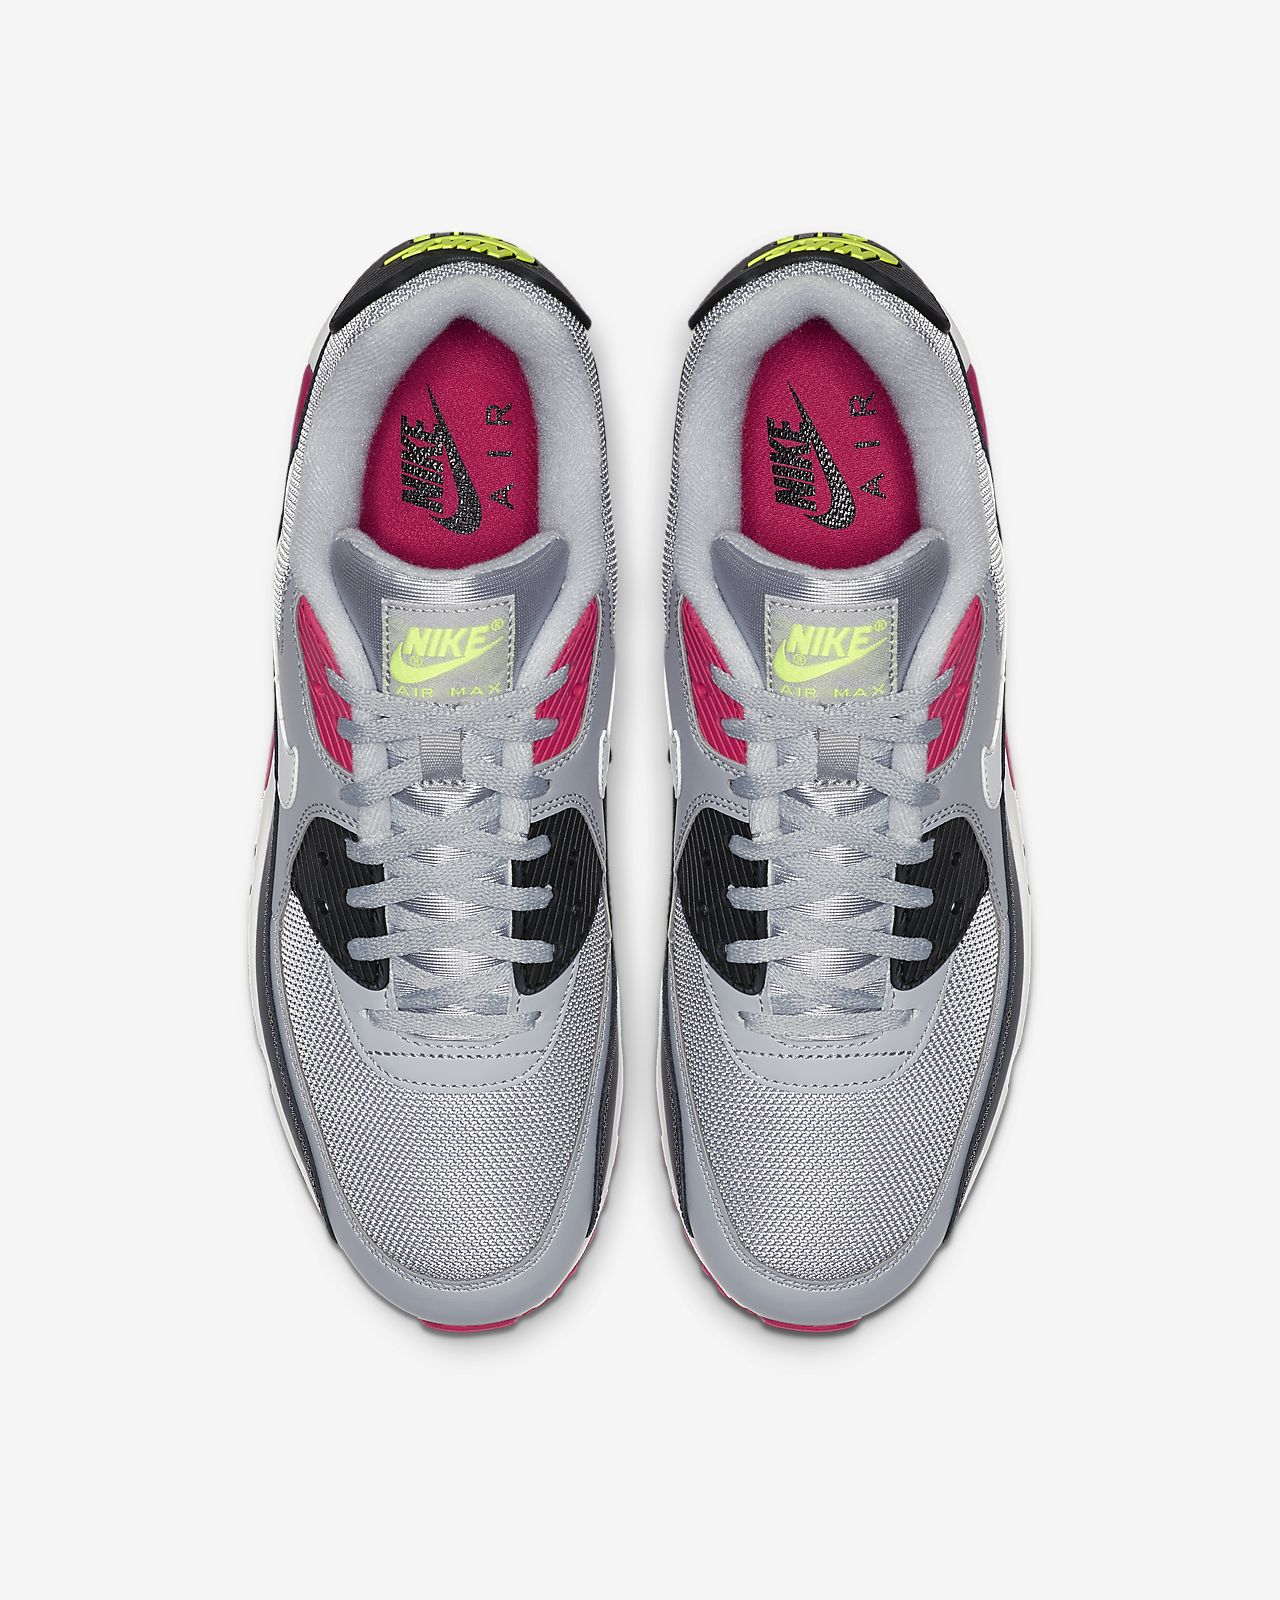 separation shoes 3867f 3756a ... Nike Air Max 90 Essential Men s Shoe